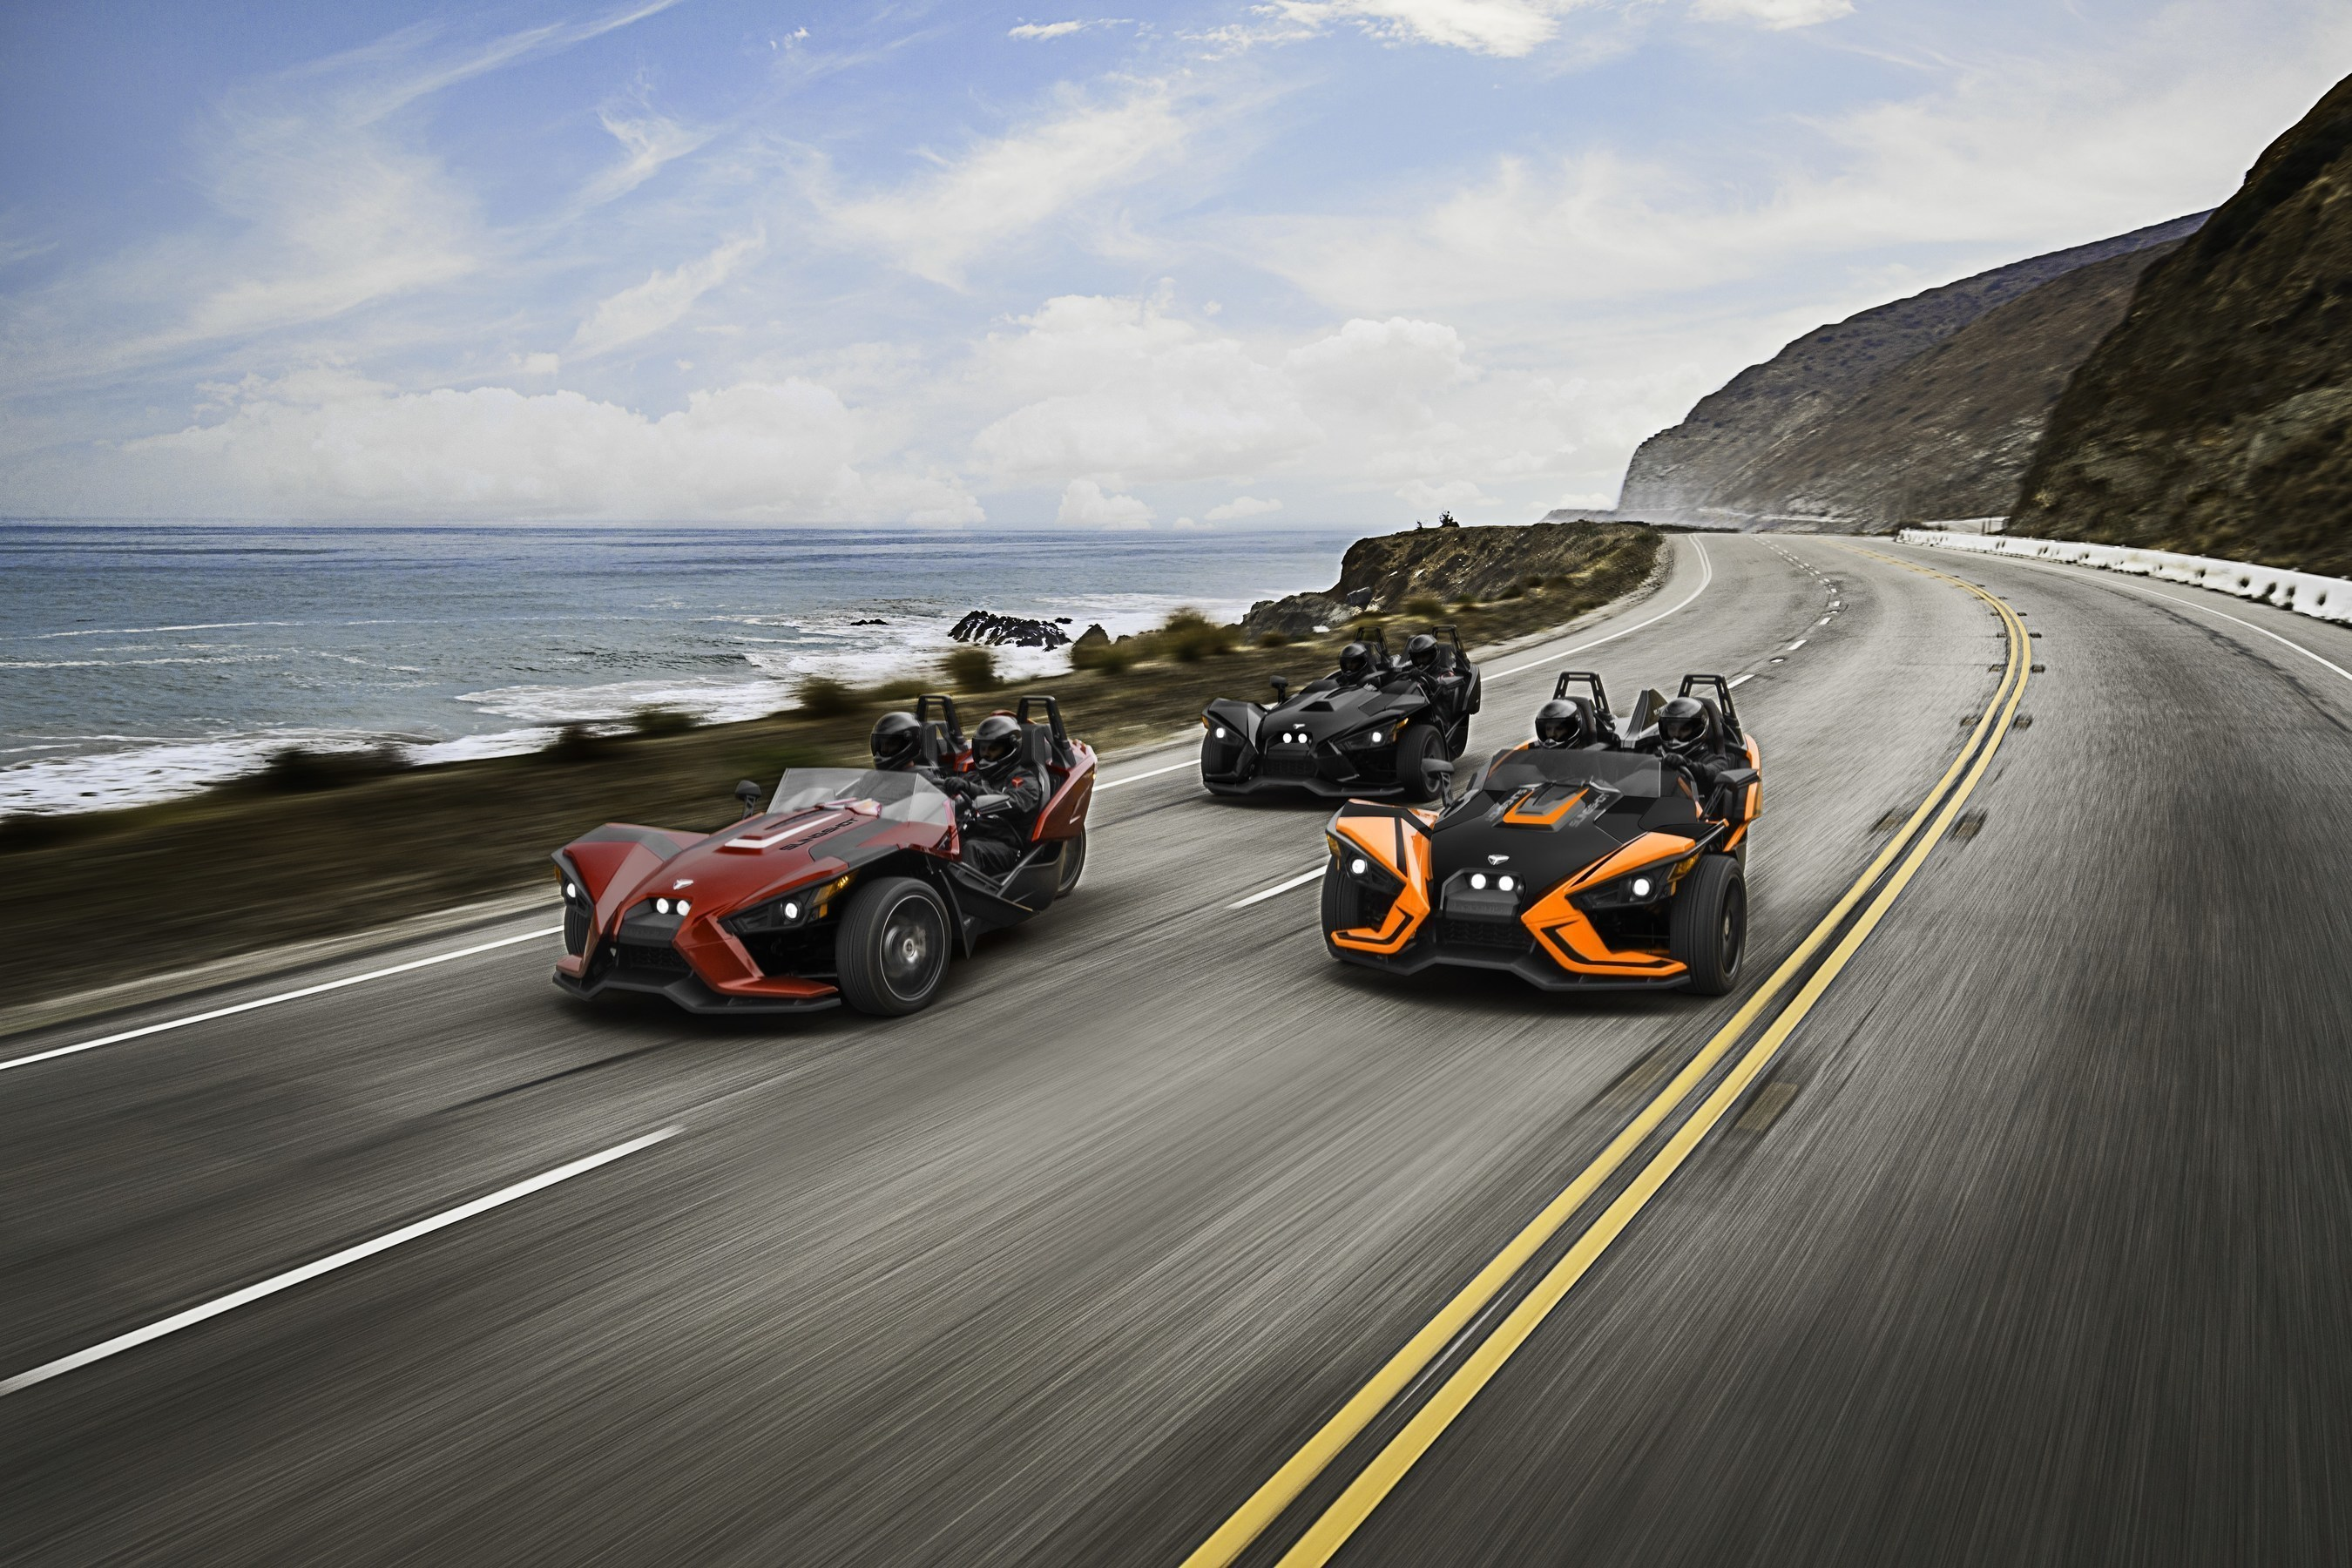 The 2017 Polaris Slingshot SL model features a clear Ripper Series wind deflector, new accent hood graphics, cut-and-sew seats and a premium Rockford Fosgate speaker system, in addition to the currently available standard SL features. The Slingshot SLR builds on the Slingshot's strong foundation with full-body graphics, premium forged-aluminum wheels, an interior LED lighting kit and more.